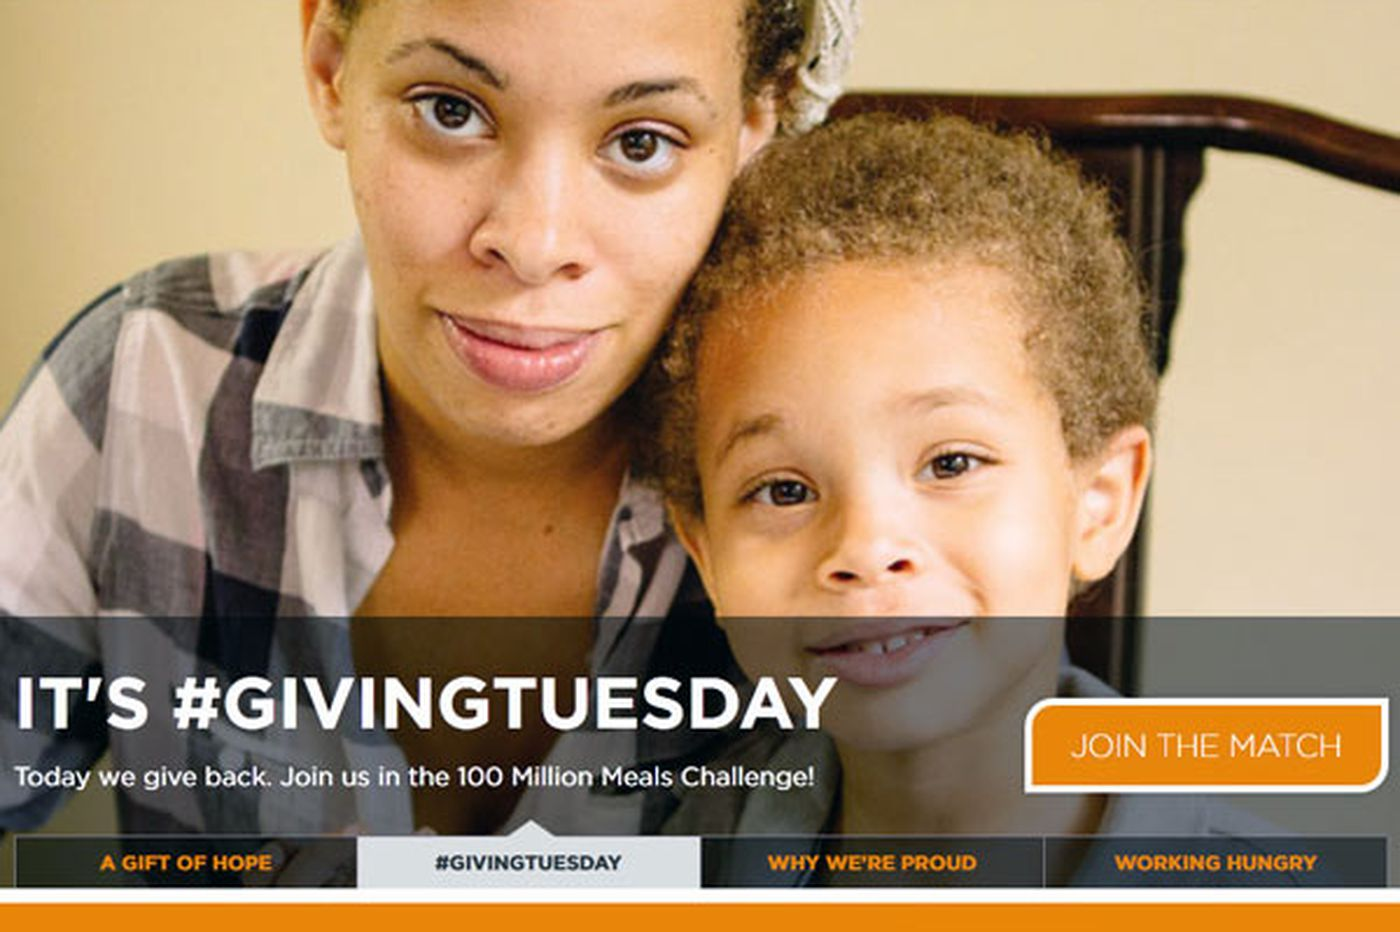 Giving Tuesday a day to give back